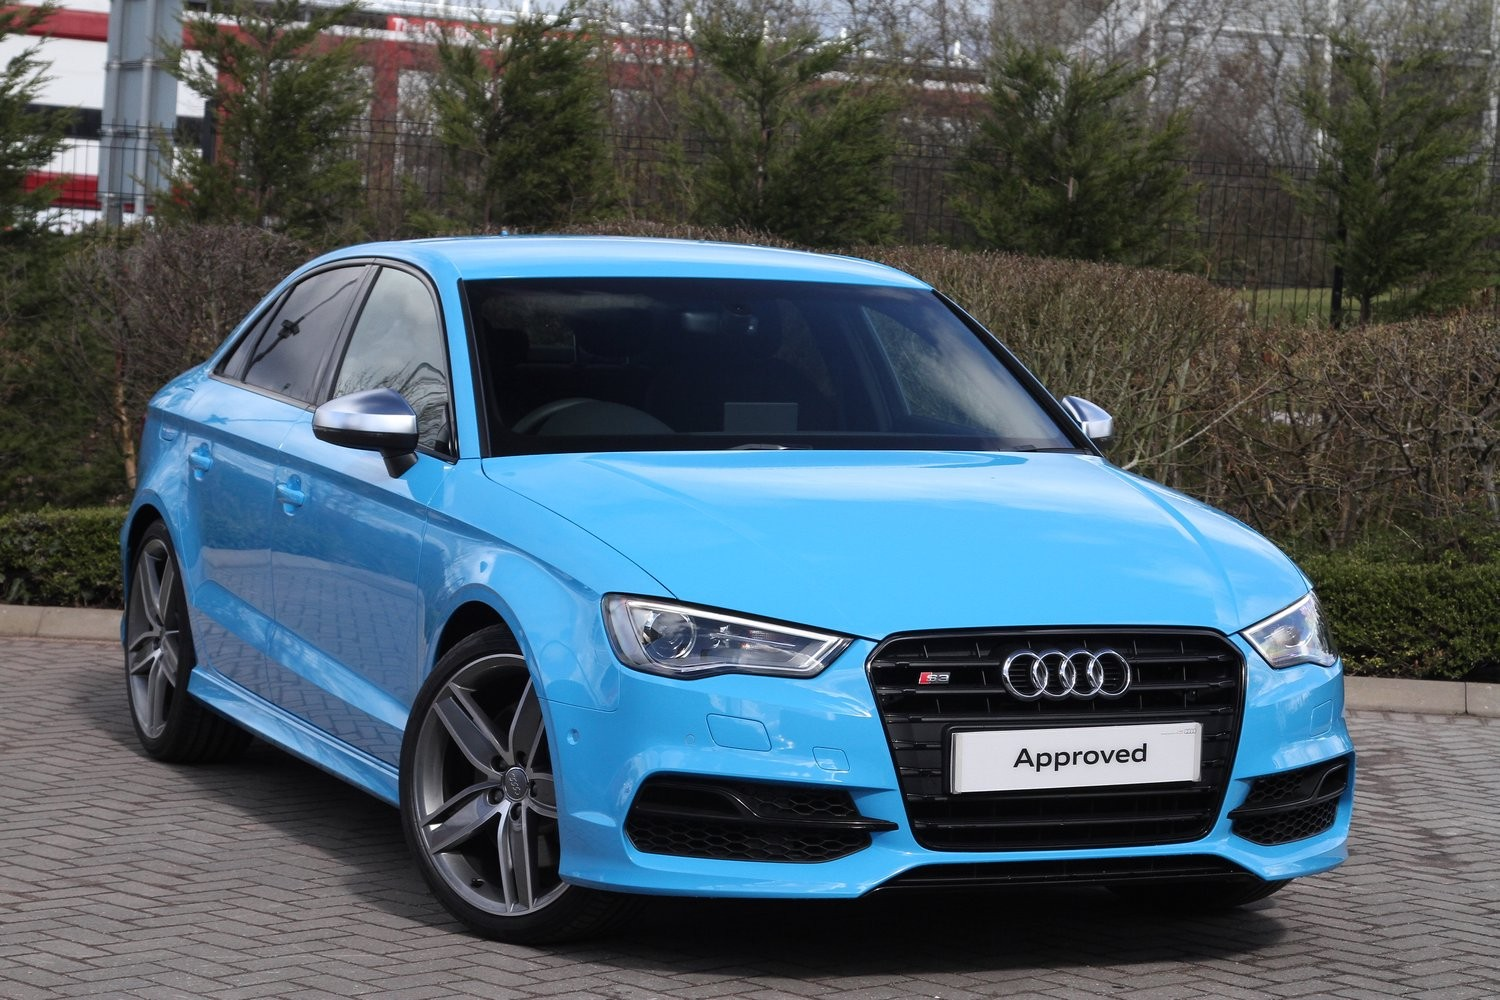 Best Car For Uber >> Which is audi's best blue | Audi-Sport.net